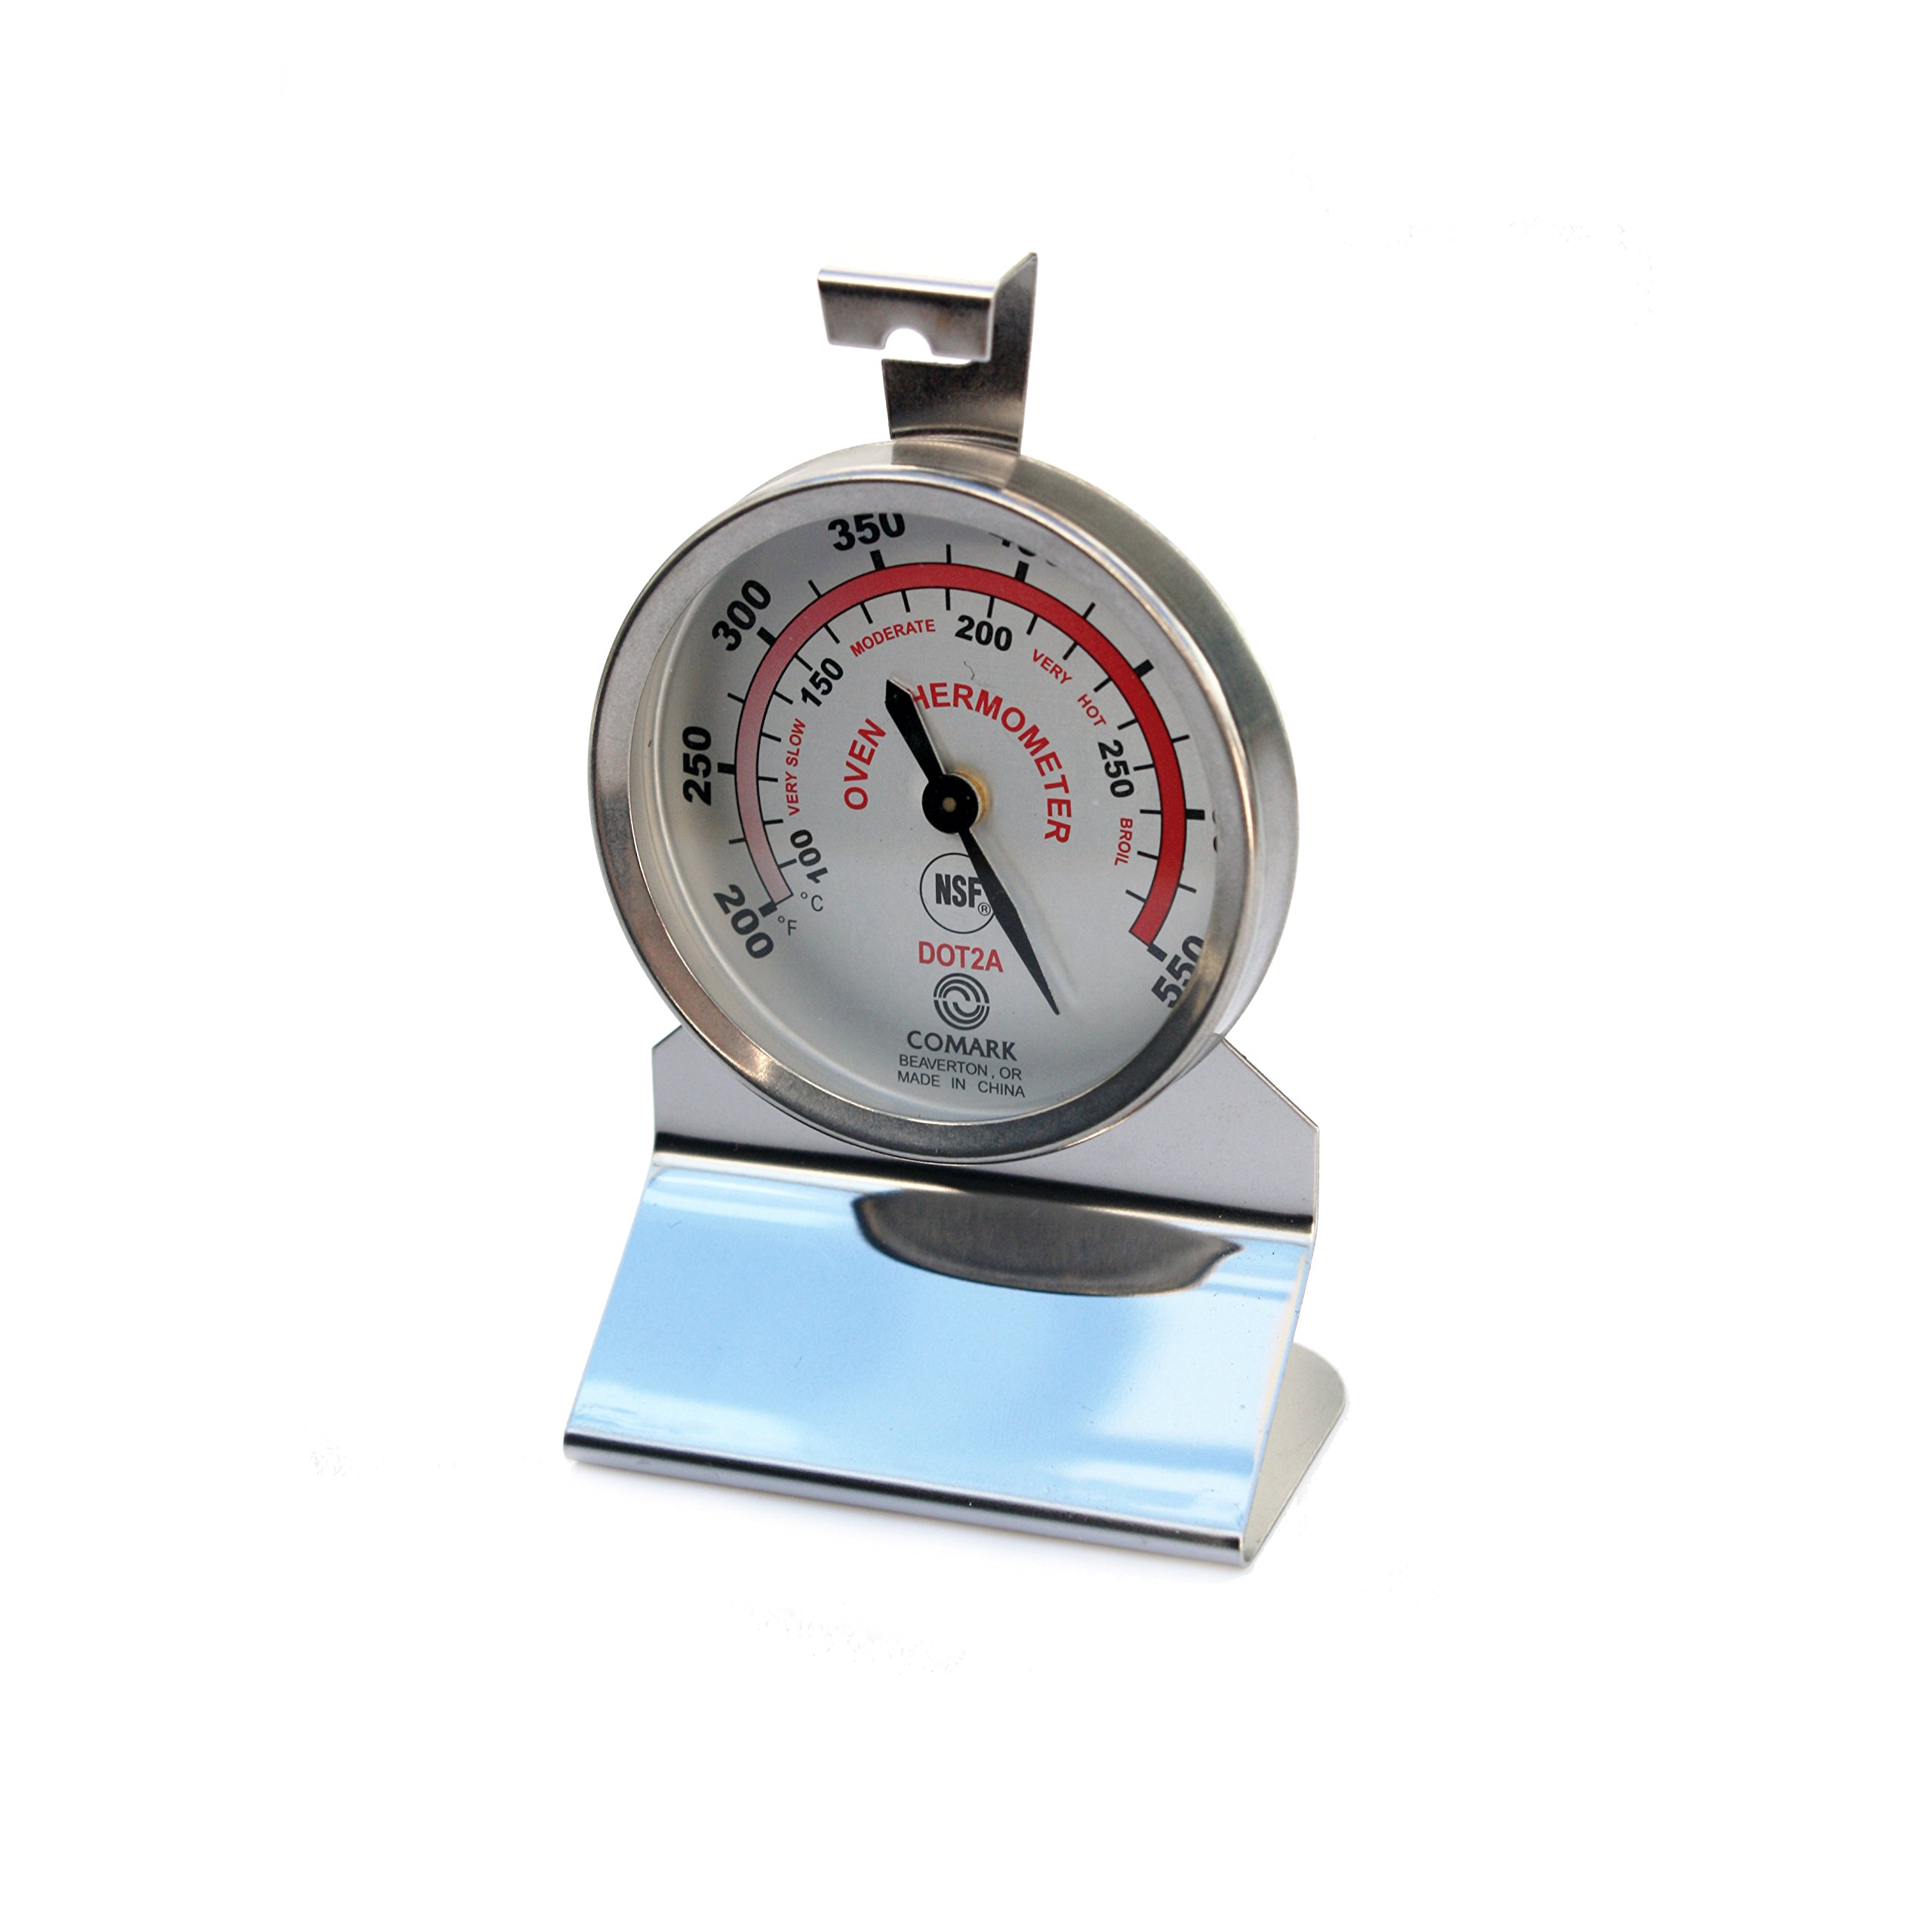 Comark Instruments | DOT2AK | Stainless Steel Dial Oven Thermometer